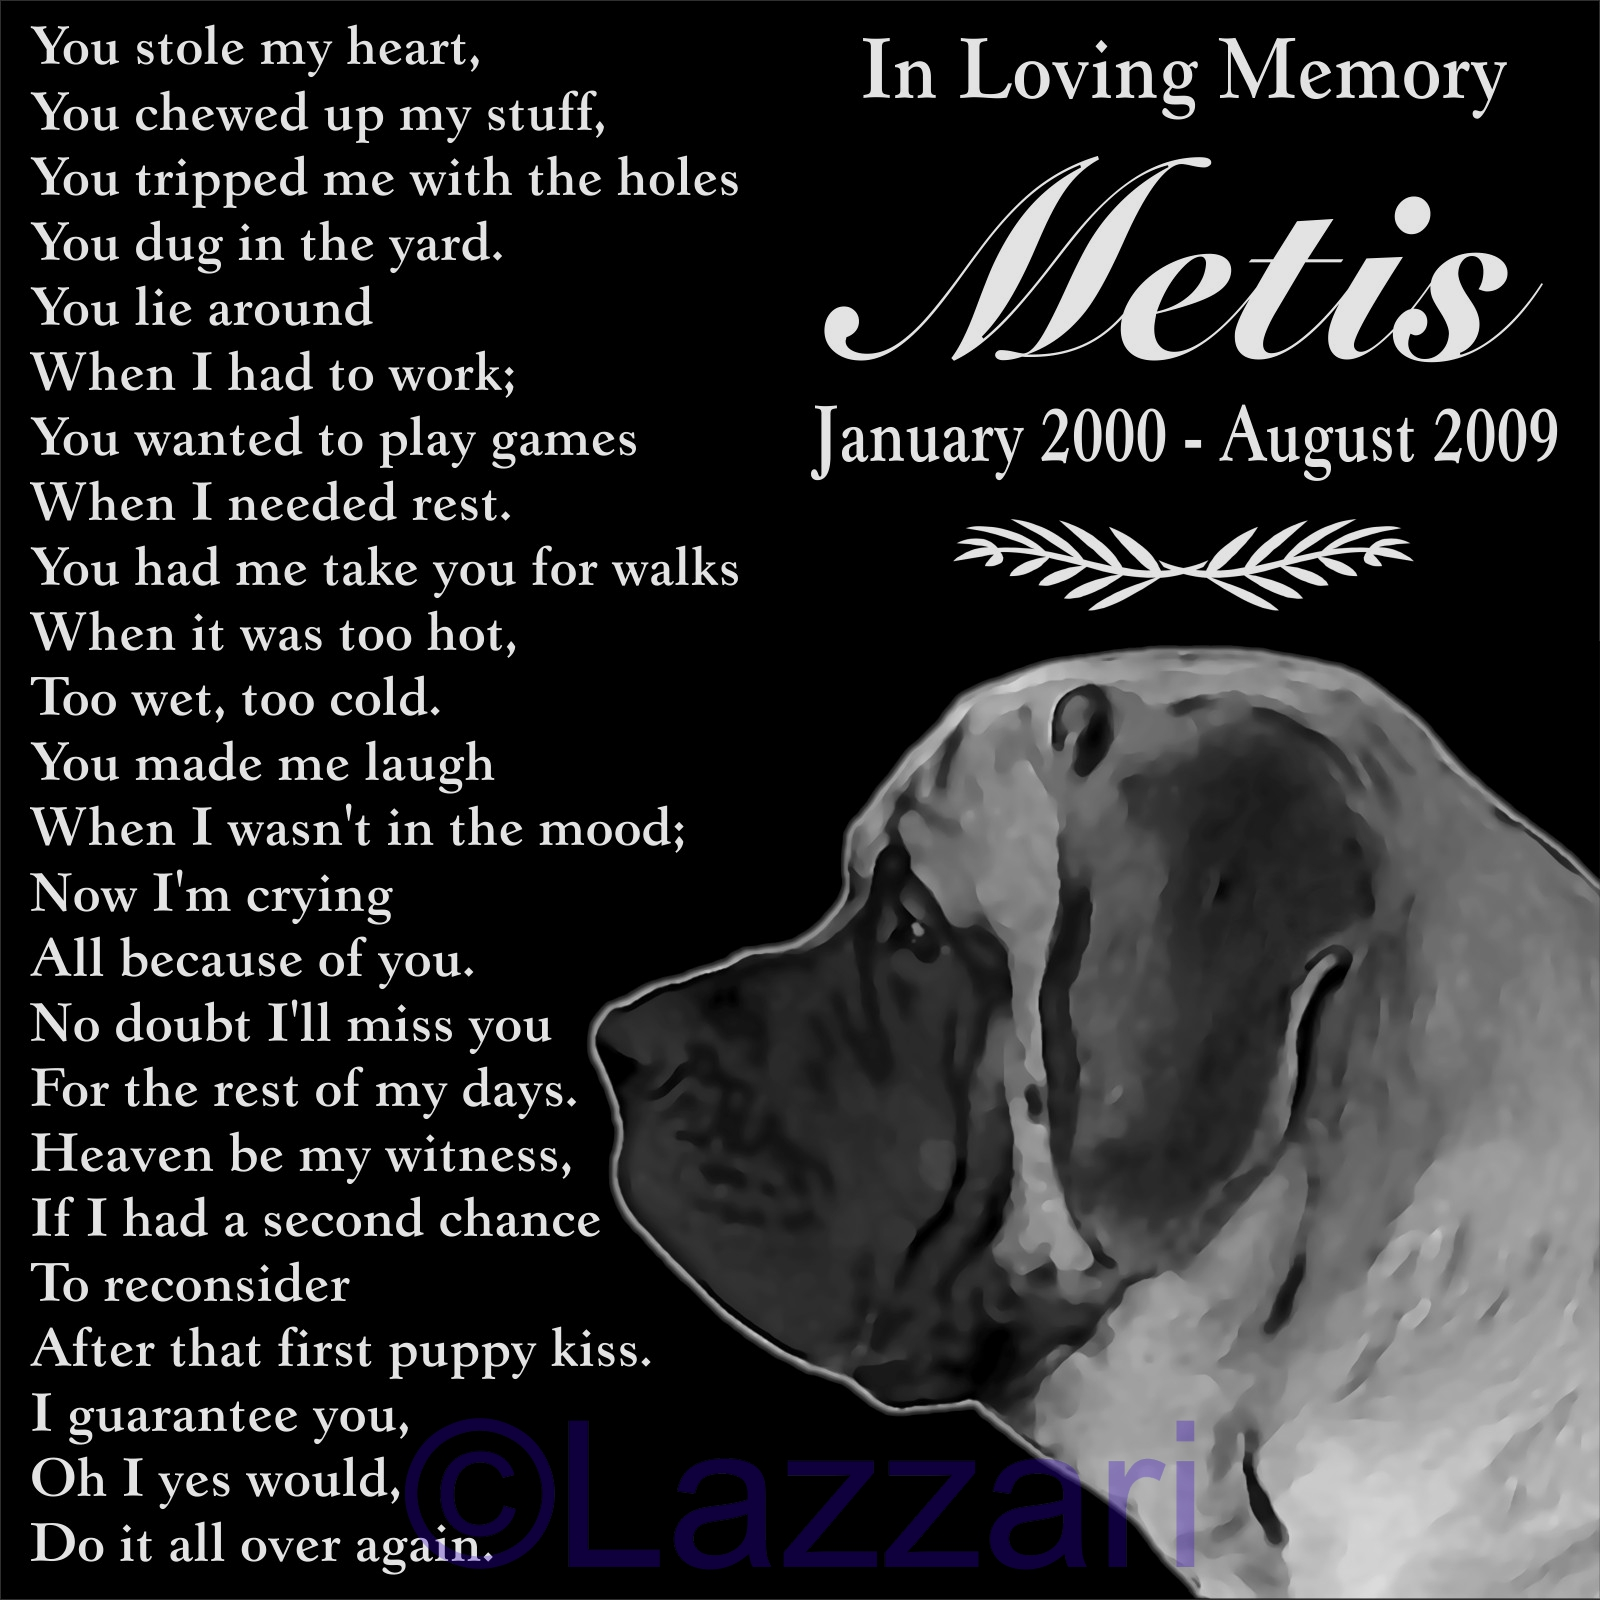 Details About Personalized English Mastiff Pet Memorial 12x12 Granite Grave Marker Headstone